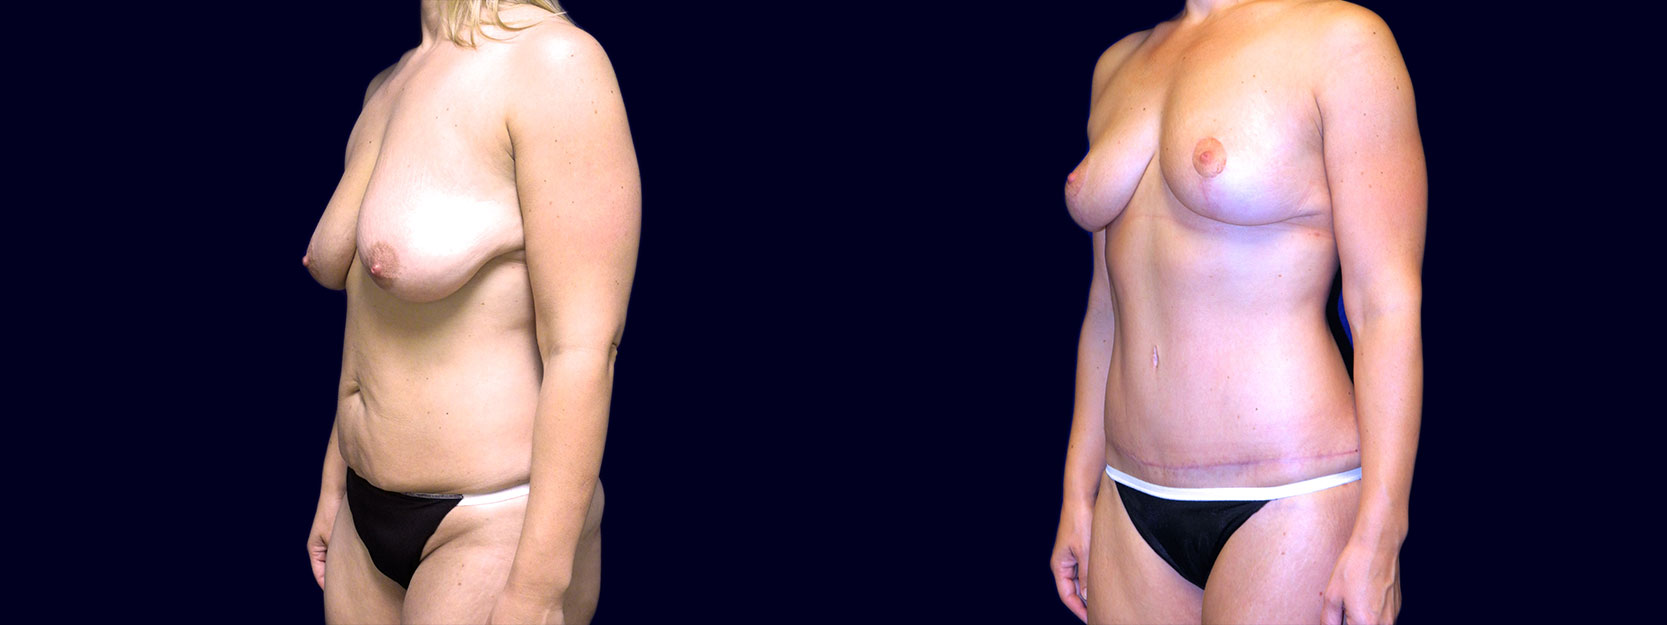 Left 3/4 View - Breast Lift & Tummy Tuck After Weight Loss